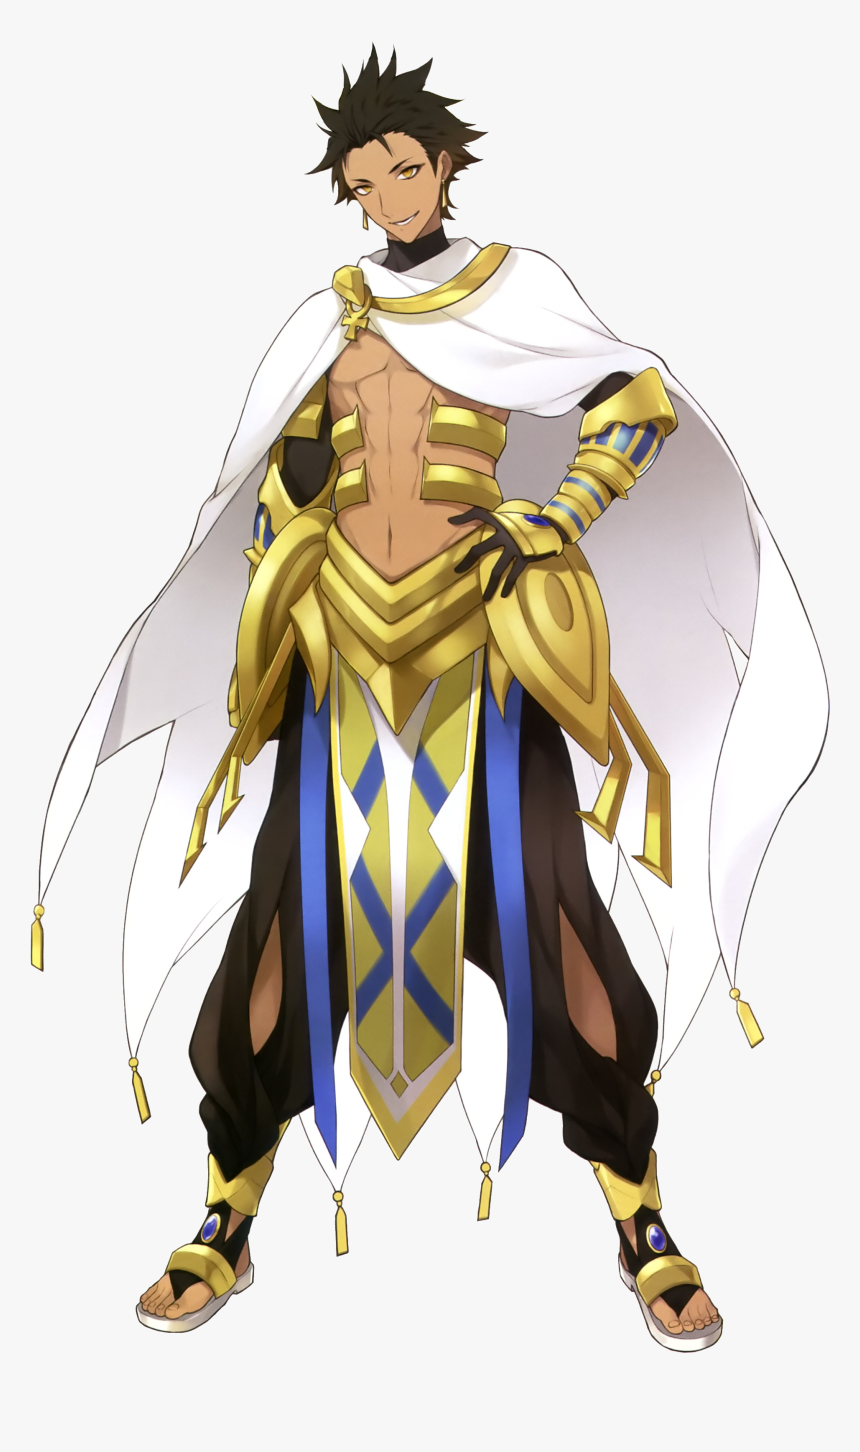 Fategrand Order Png - Rider Ozymandias Vs Battles - Fate Grand Order Png, Transparent ...